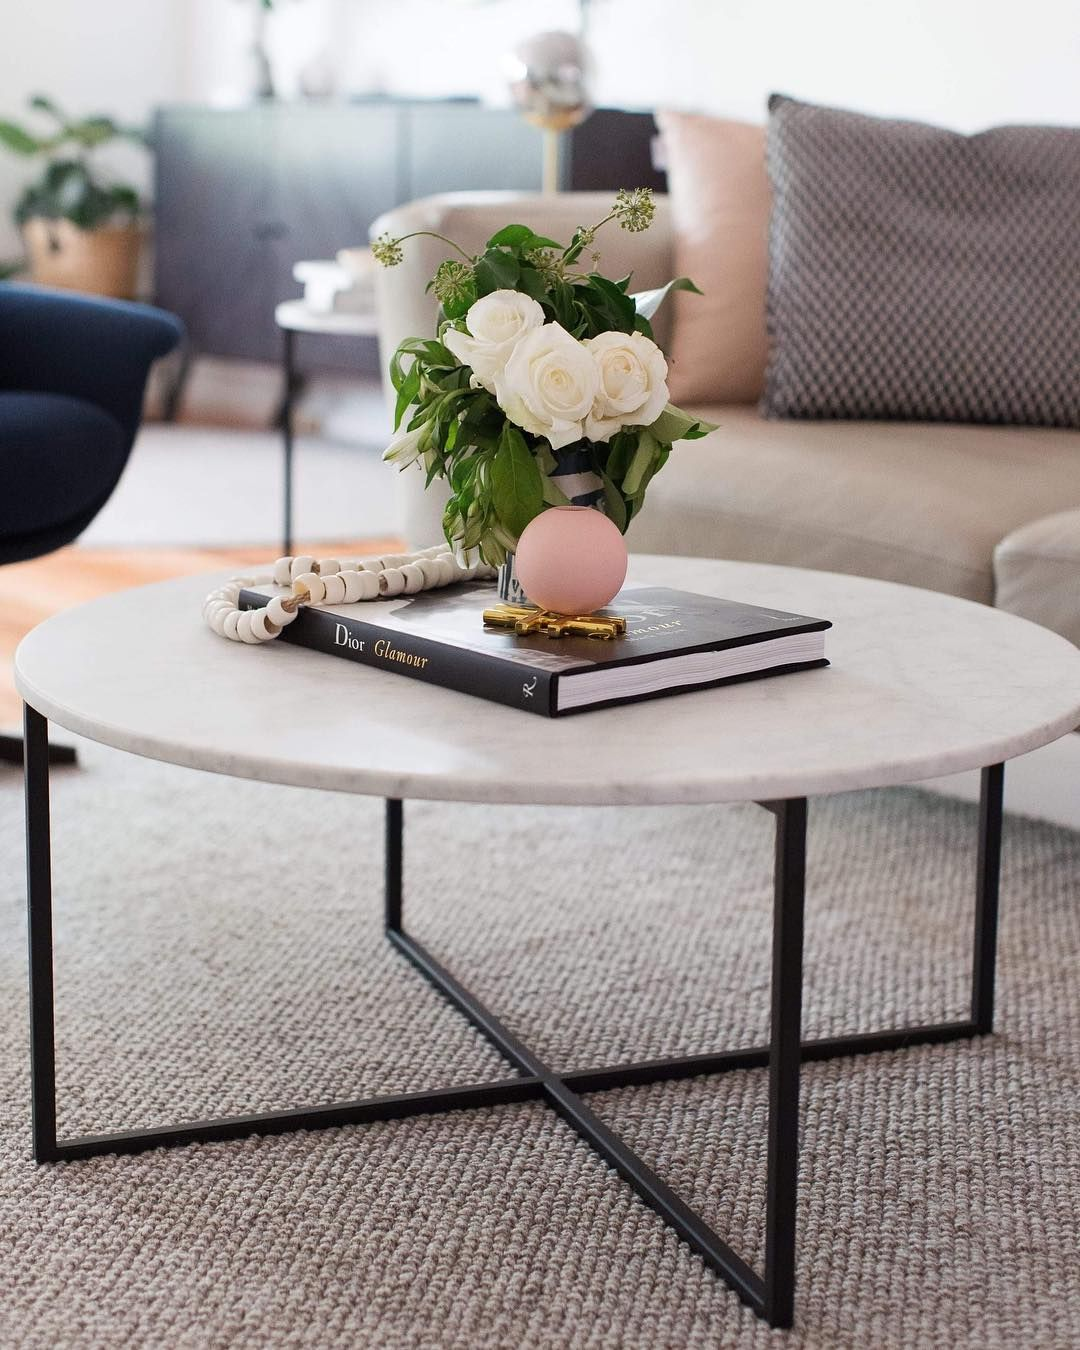 Globewest On Instagram Blooms And Blush For A Feminine Touch With Our Elle Luxe Coffee Table Styling By Studioblack Coffee Table Home Coffee Tables Decor [ 1350 x 1080 Pixel ]